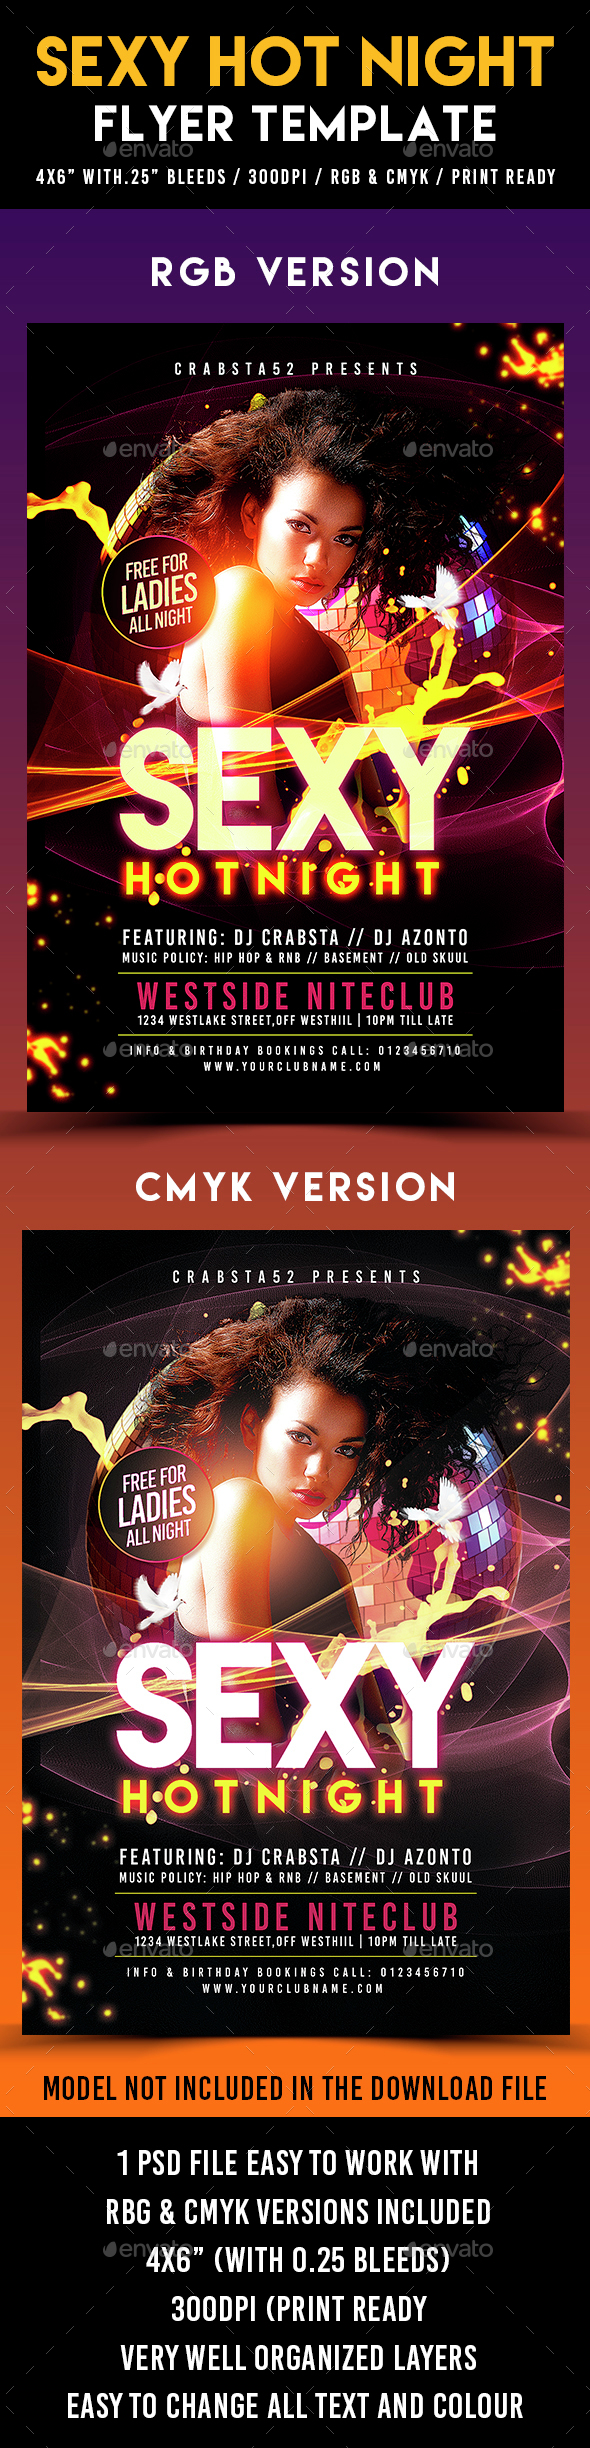 Sexy Hot Night Flyer Template - Clubs & Parties Events